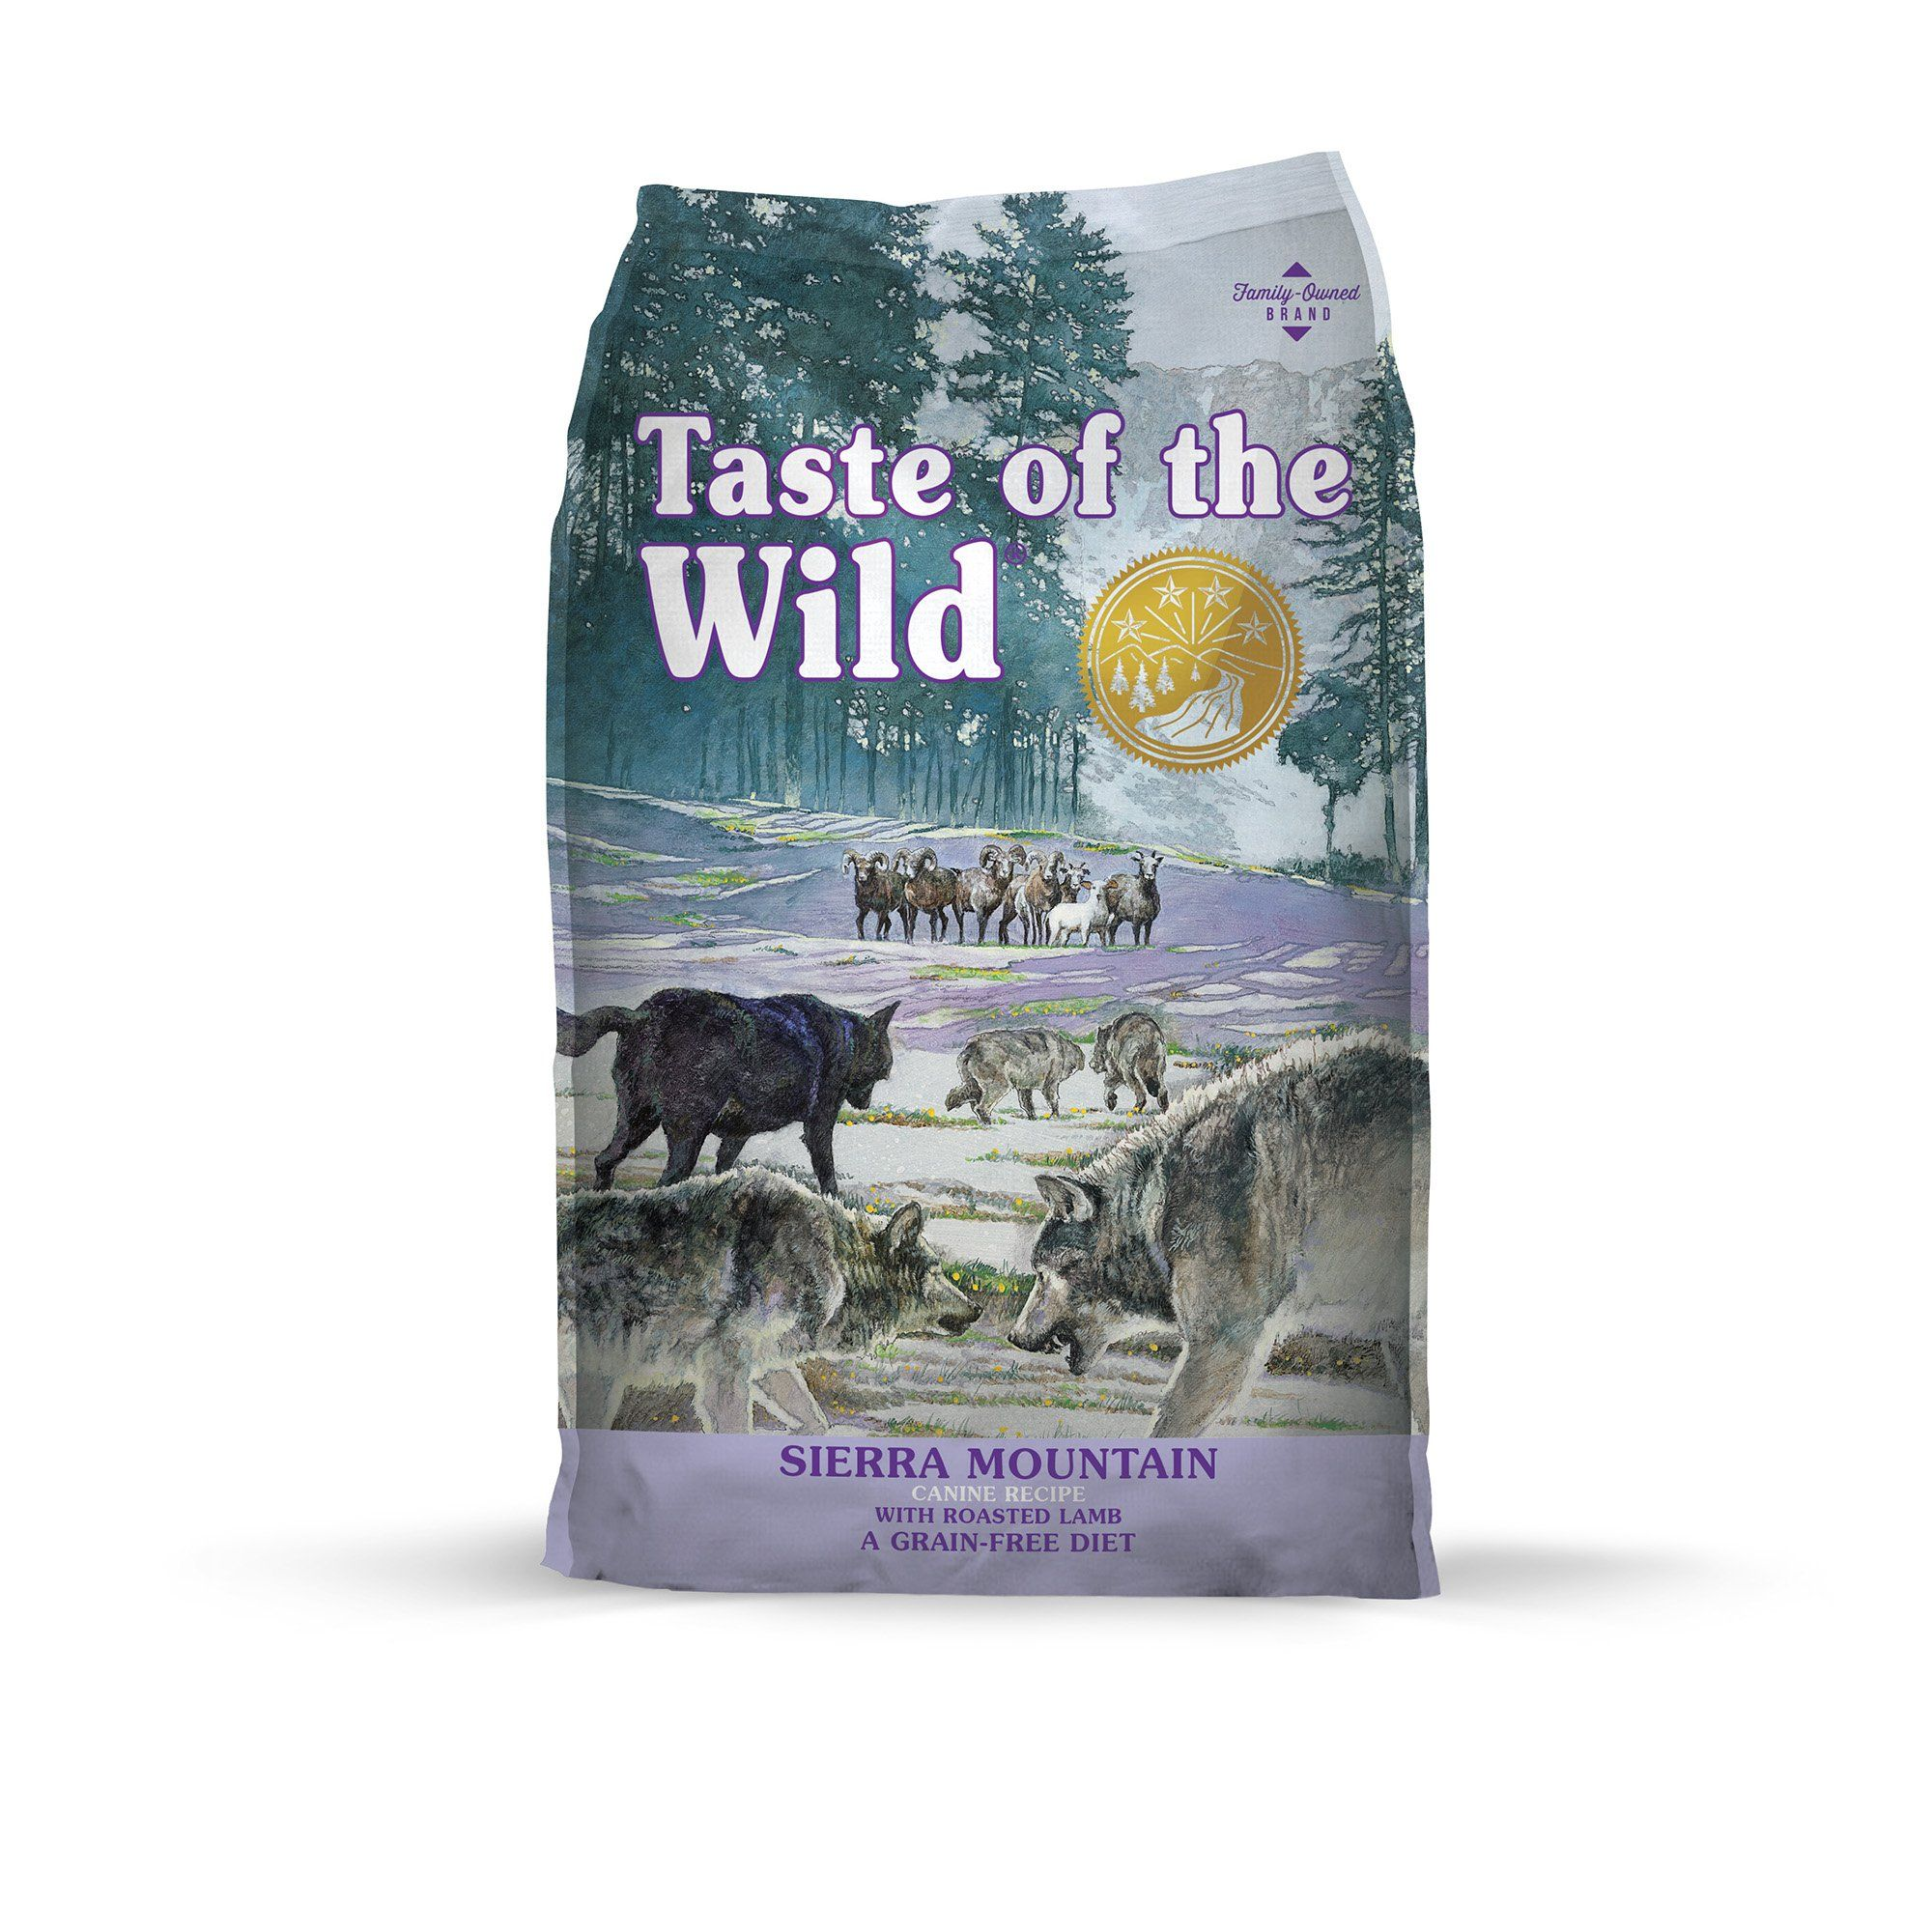 Taste of the Wild Sierra Mountain GrainFree Roasted Lamb